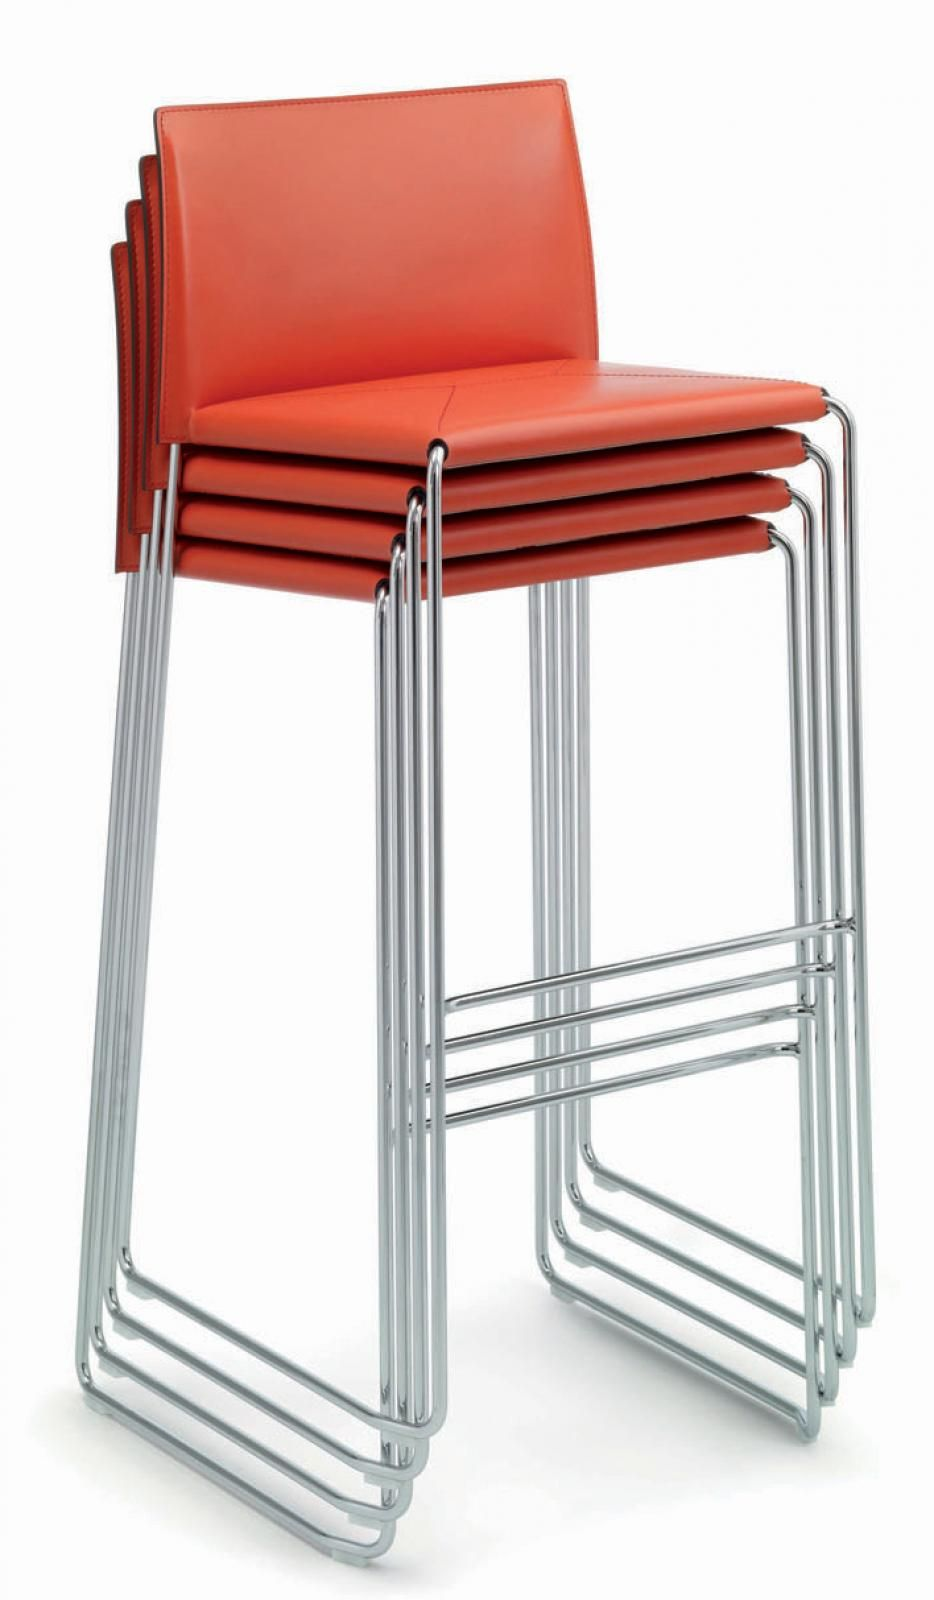 Luxury Stackable Stools with Back